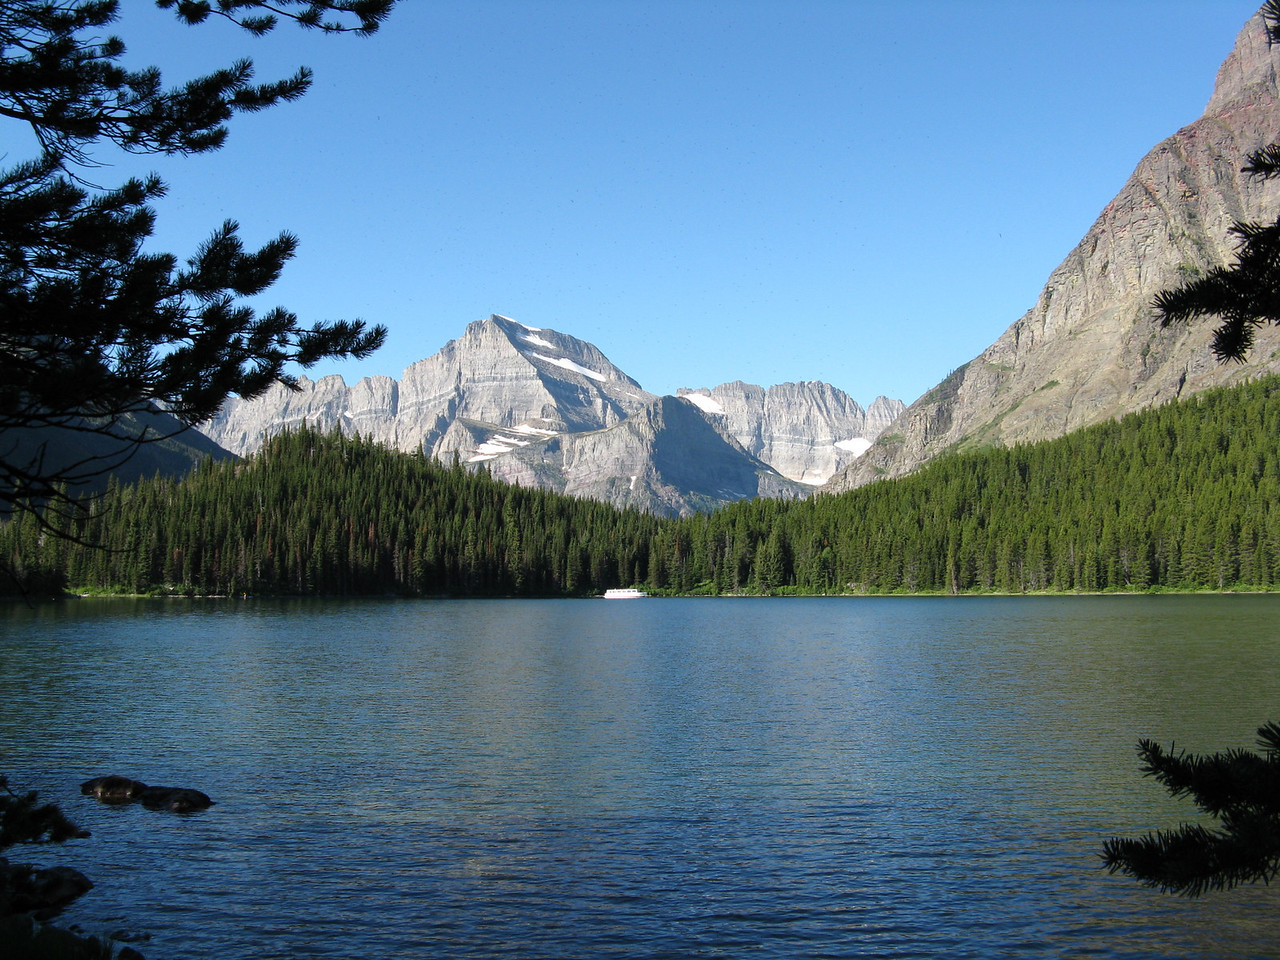 The boat reached the upper end of Swiftcurrent Lake while we were near the opposite end.